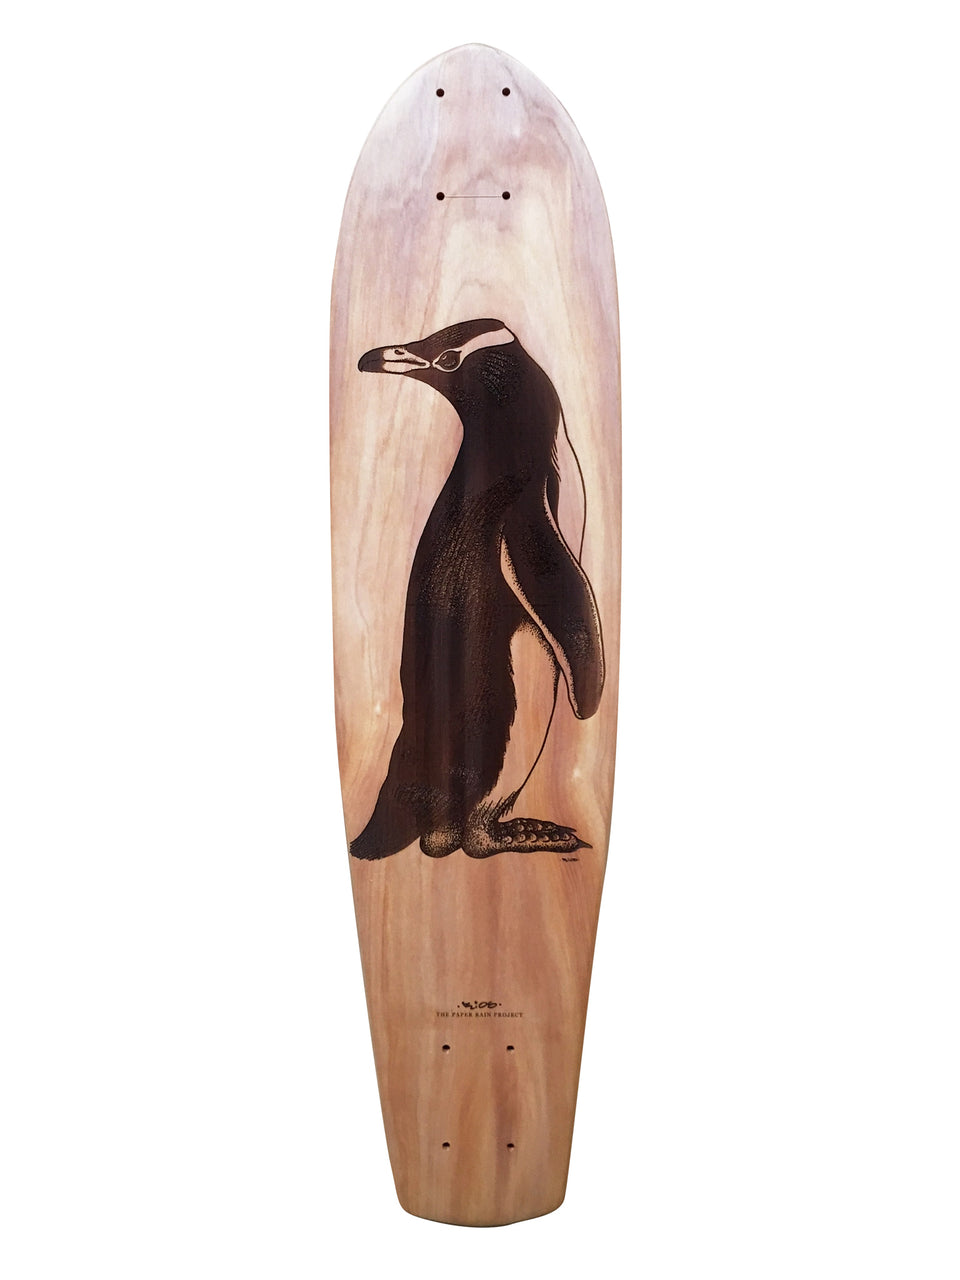 'Yellow-Eyed Penguin' designed by Ricardo Rios, laser etched onto a macrocarpa art board crafted in-house at The Paper Rain Project.